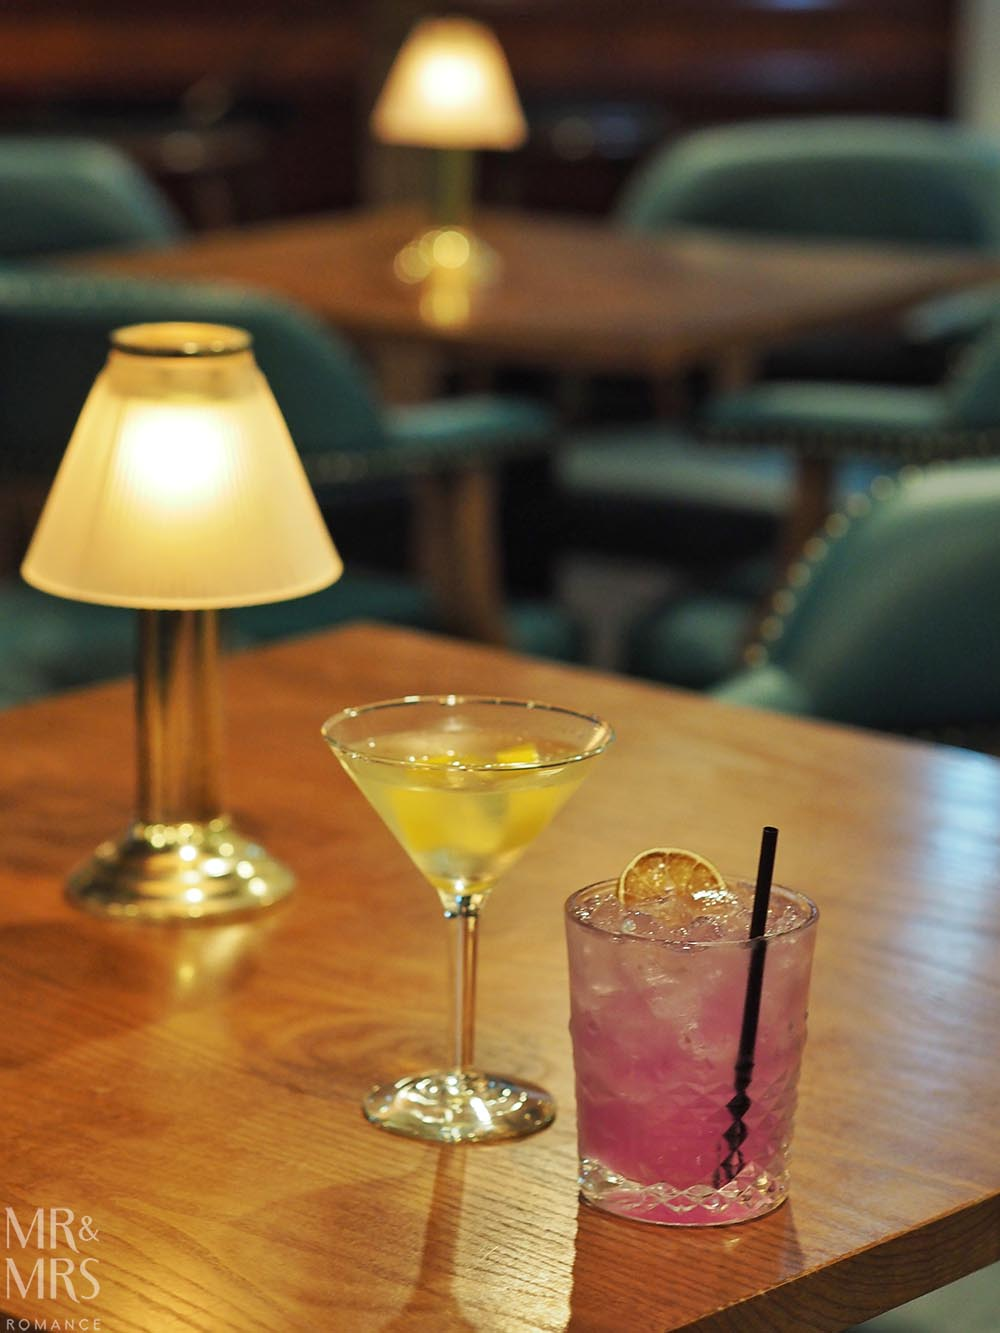 Where to stay in Tamworth NSW - Powerhouse Hotel Tamworth by Rydges - Coal Bunker Bar cocktails